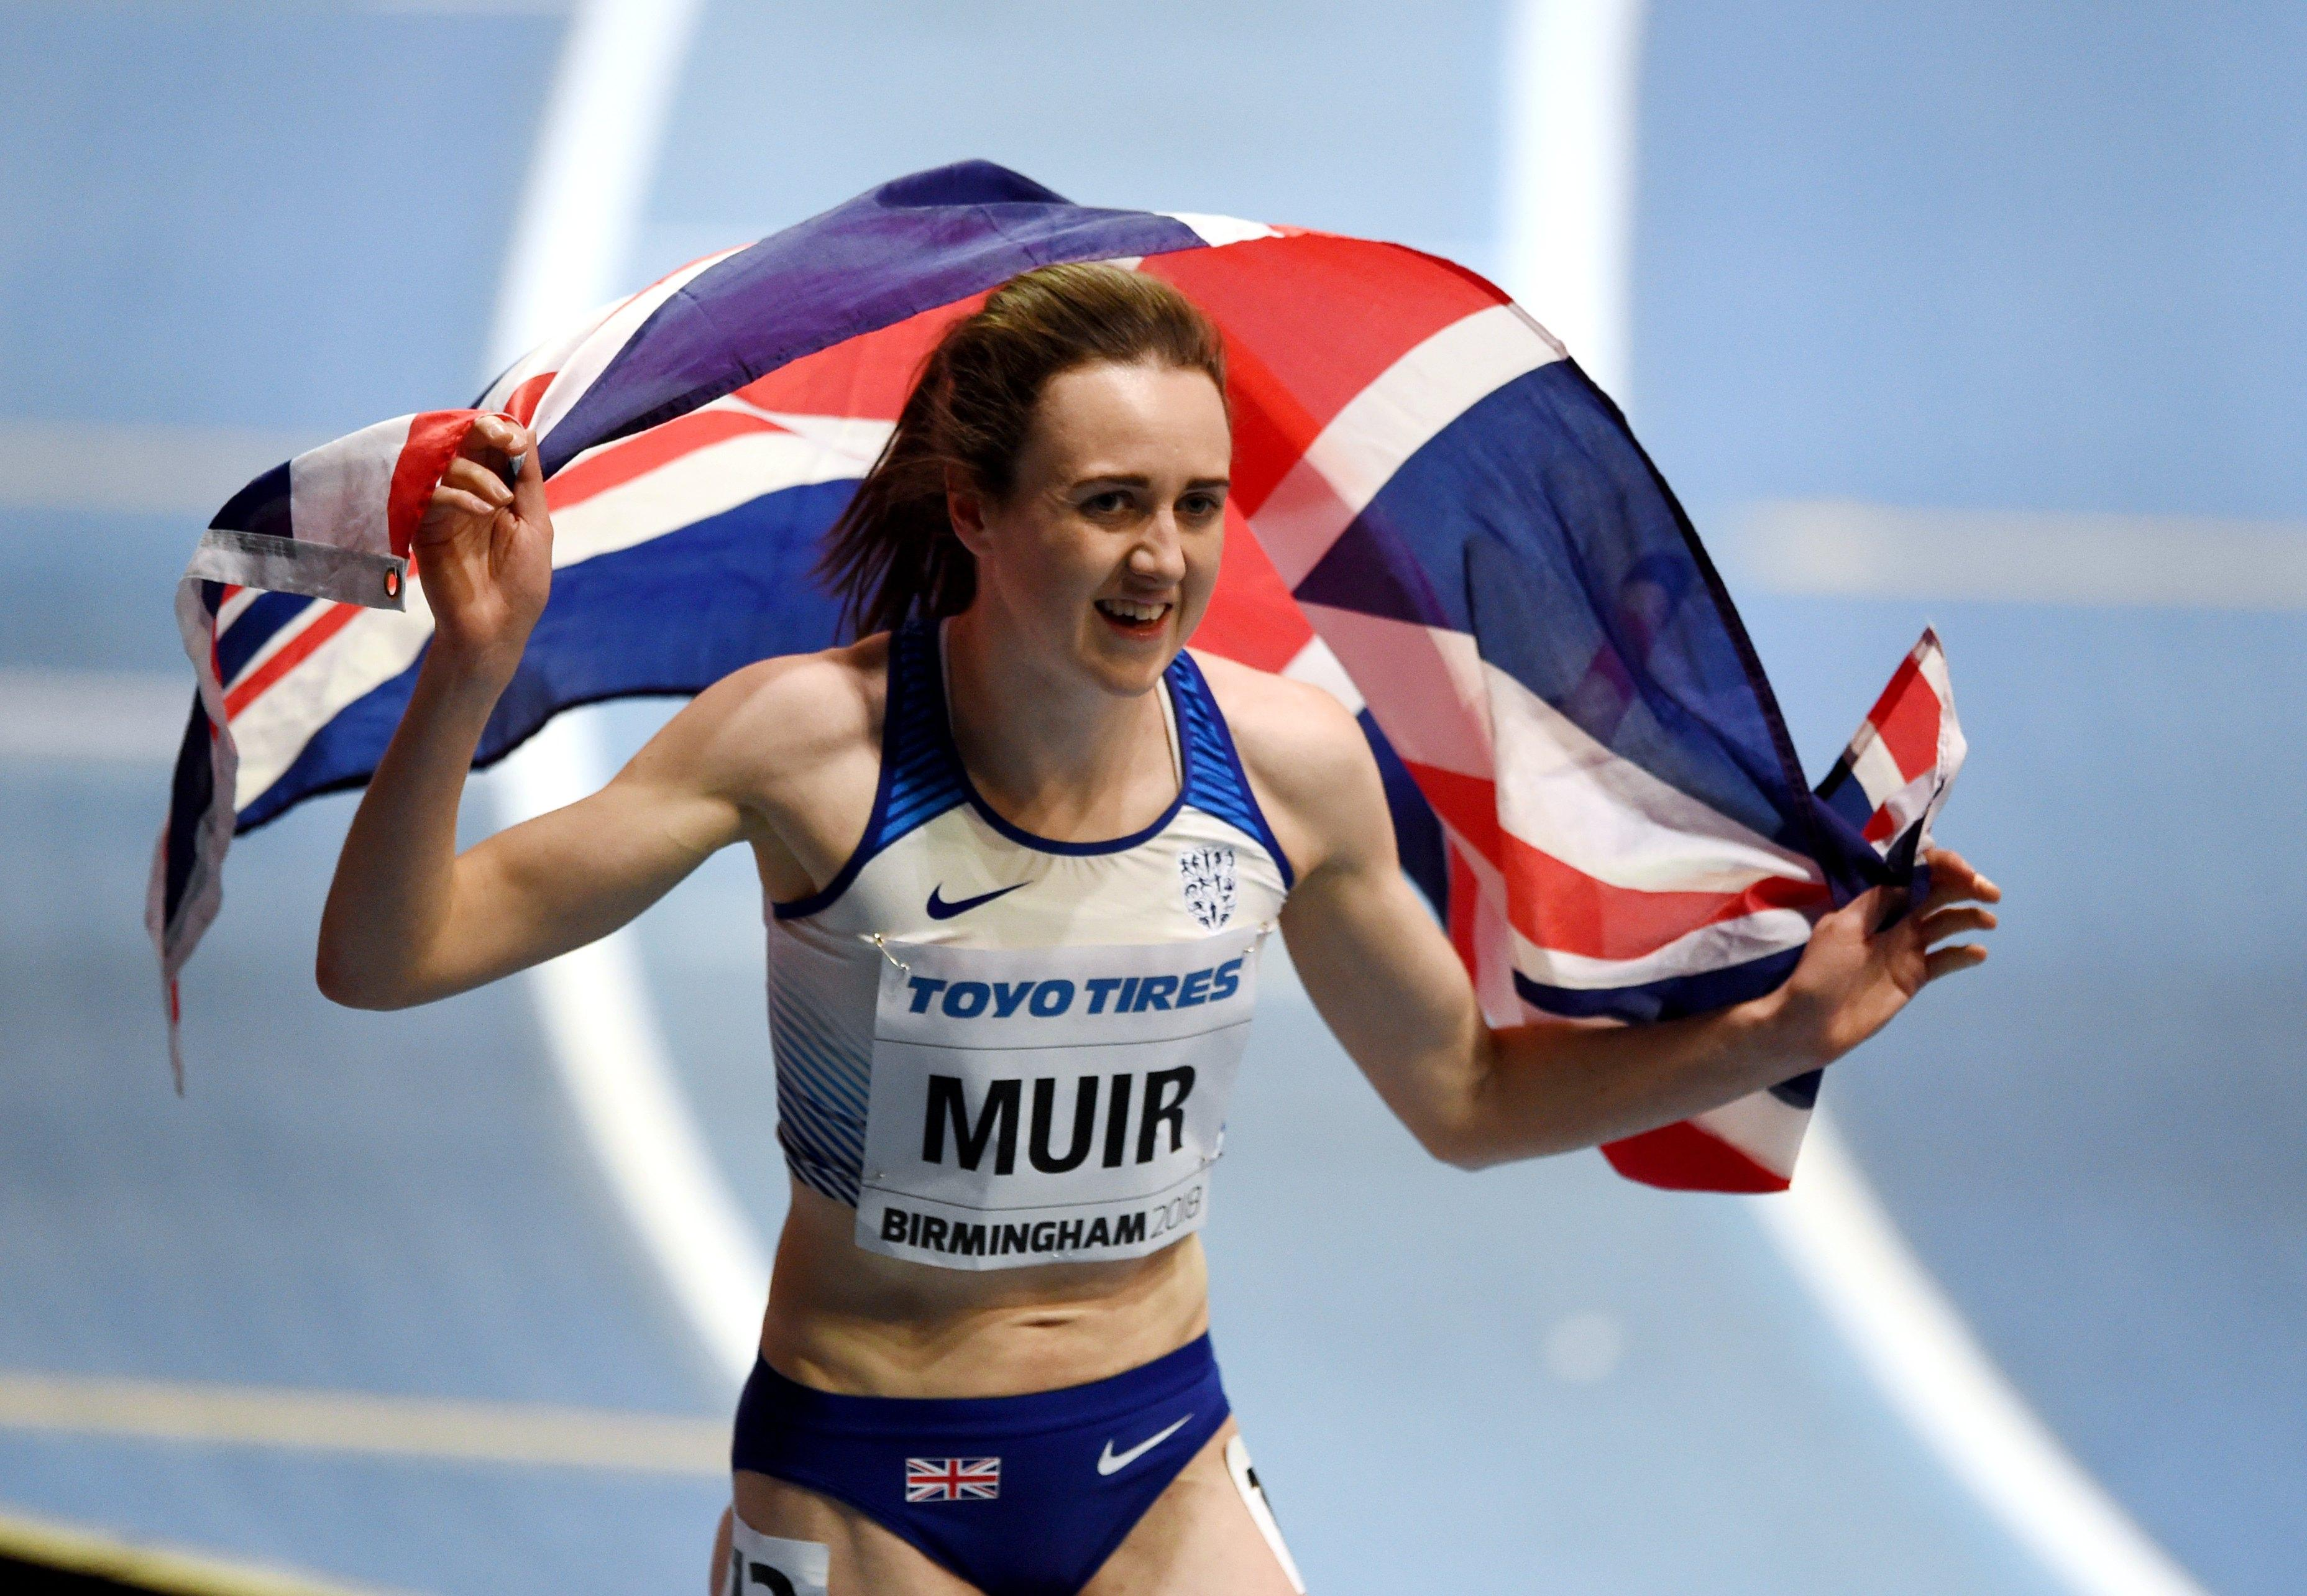 Laura Muir celebrates with the Union Jack after winning bronze at the world indoors in the 3,000 metres